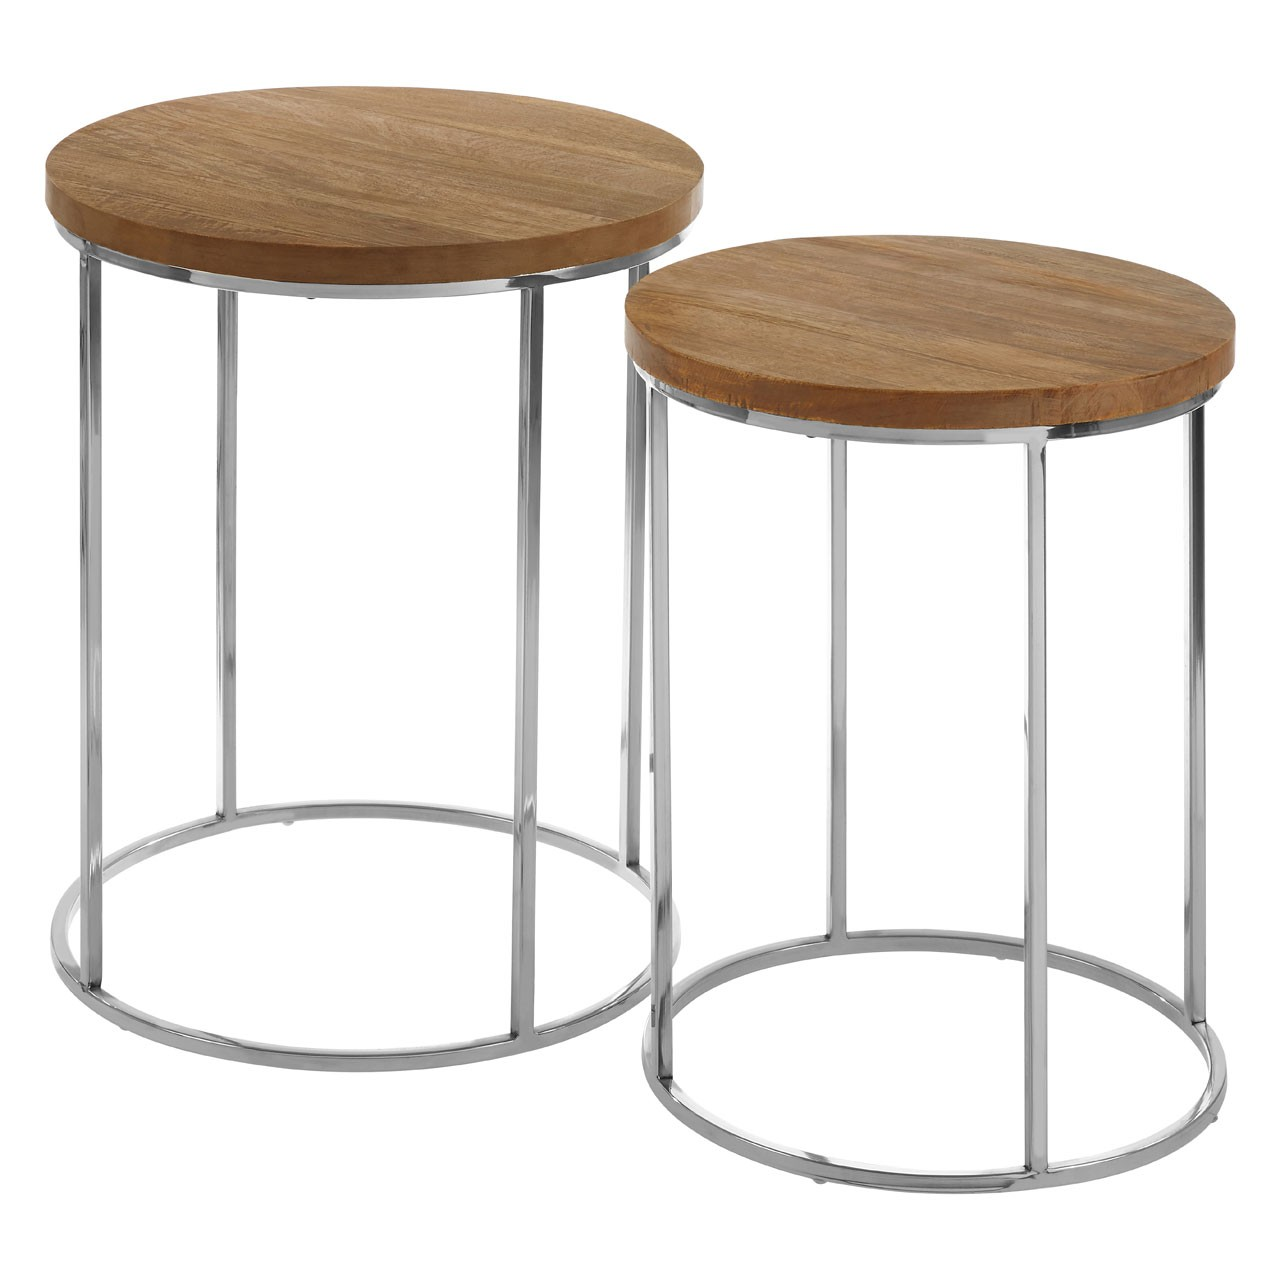 Agra Round Side Tables, Set Of 2